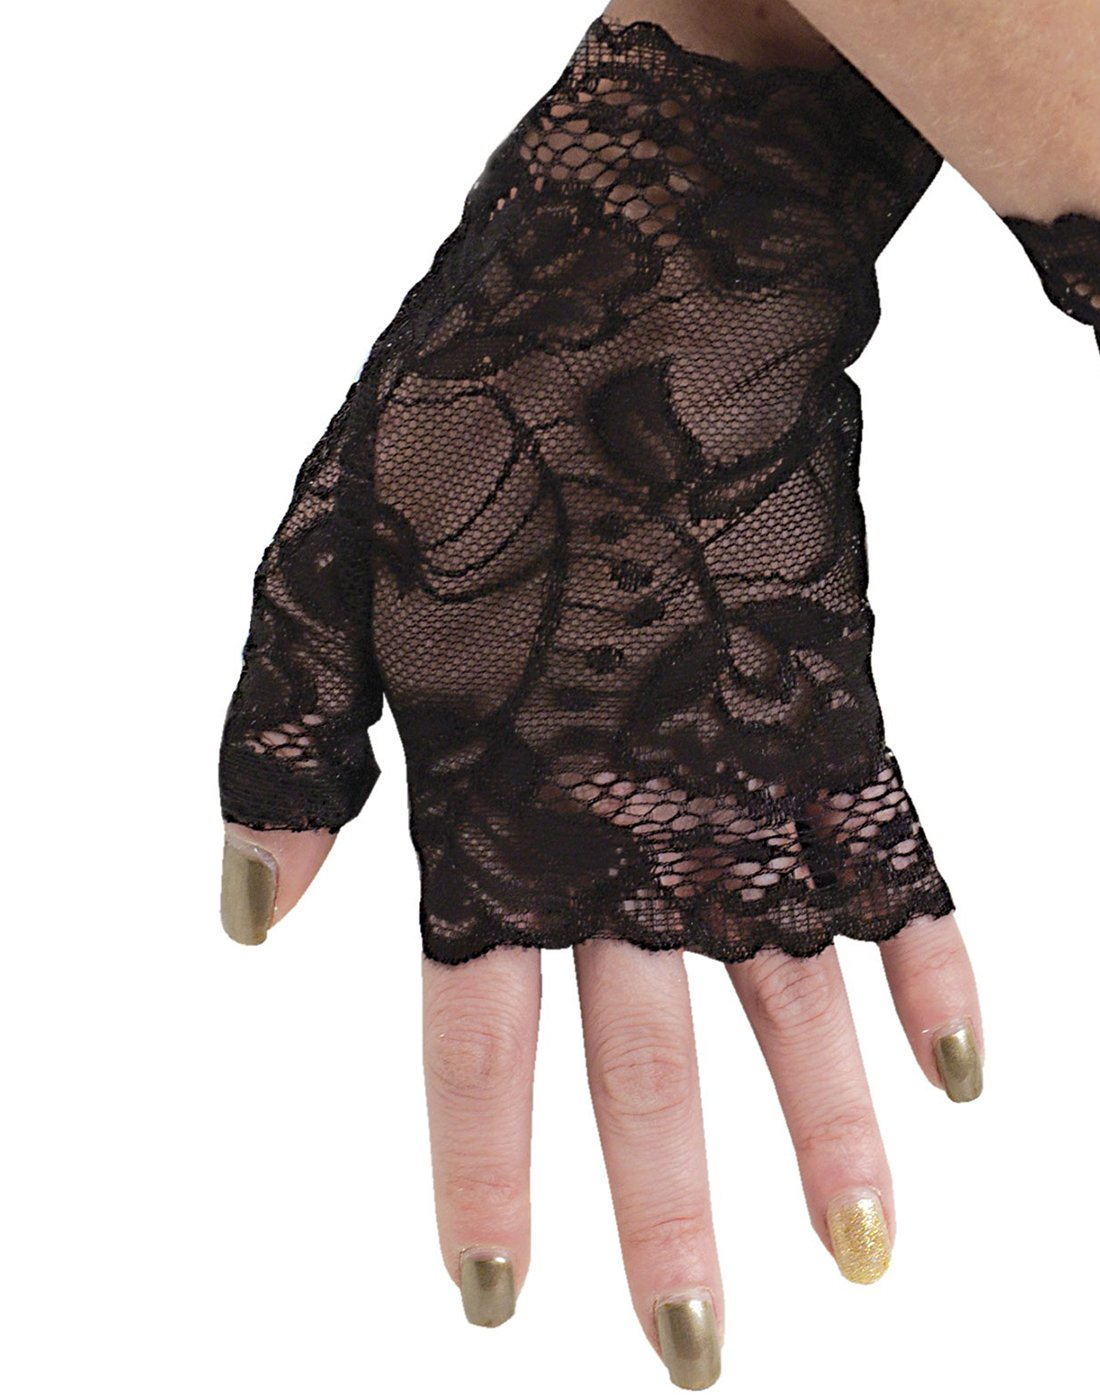 Fun World Sexy Lace Gloves 1980's Gothic Steampunk Womens, Black, Standard 4